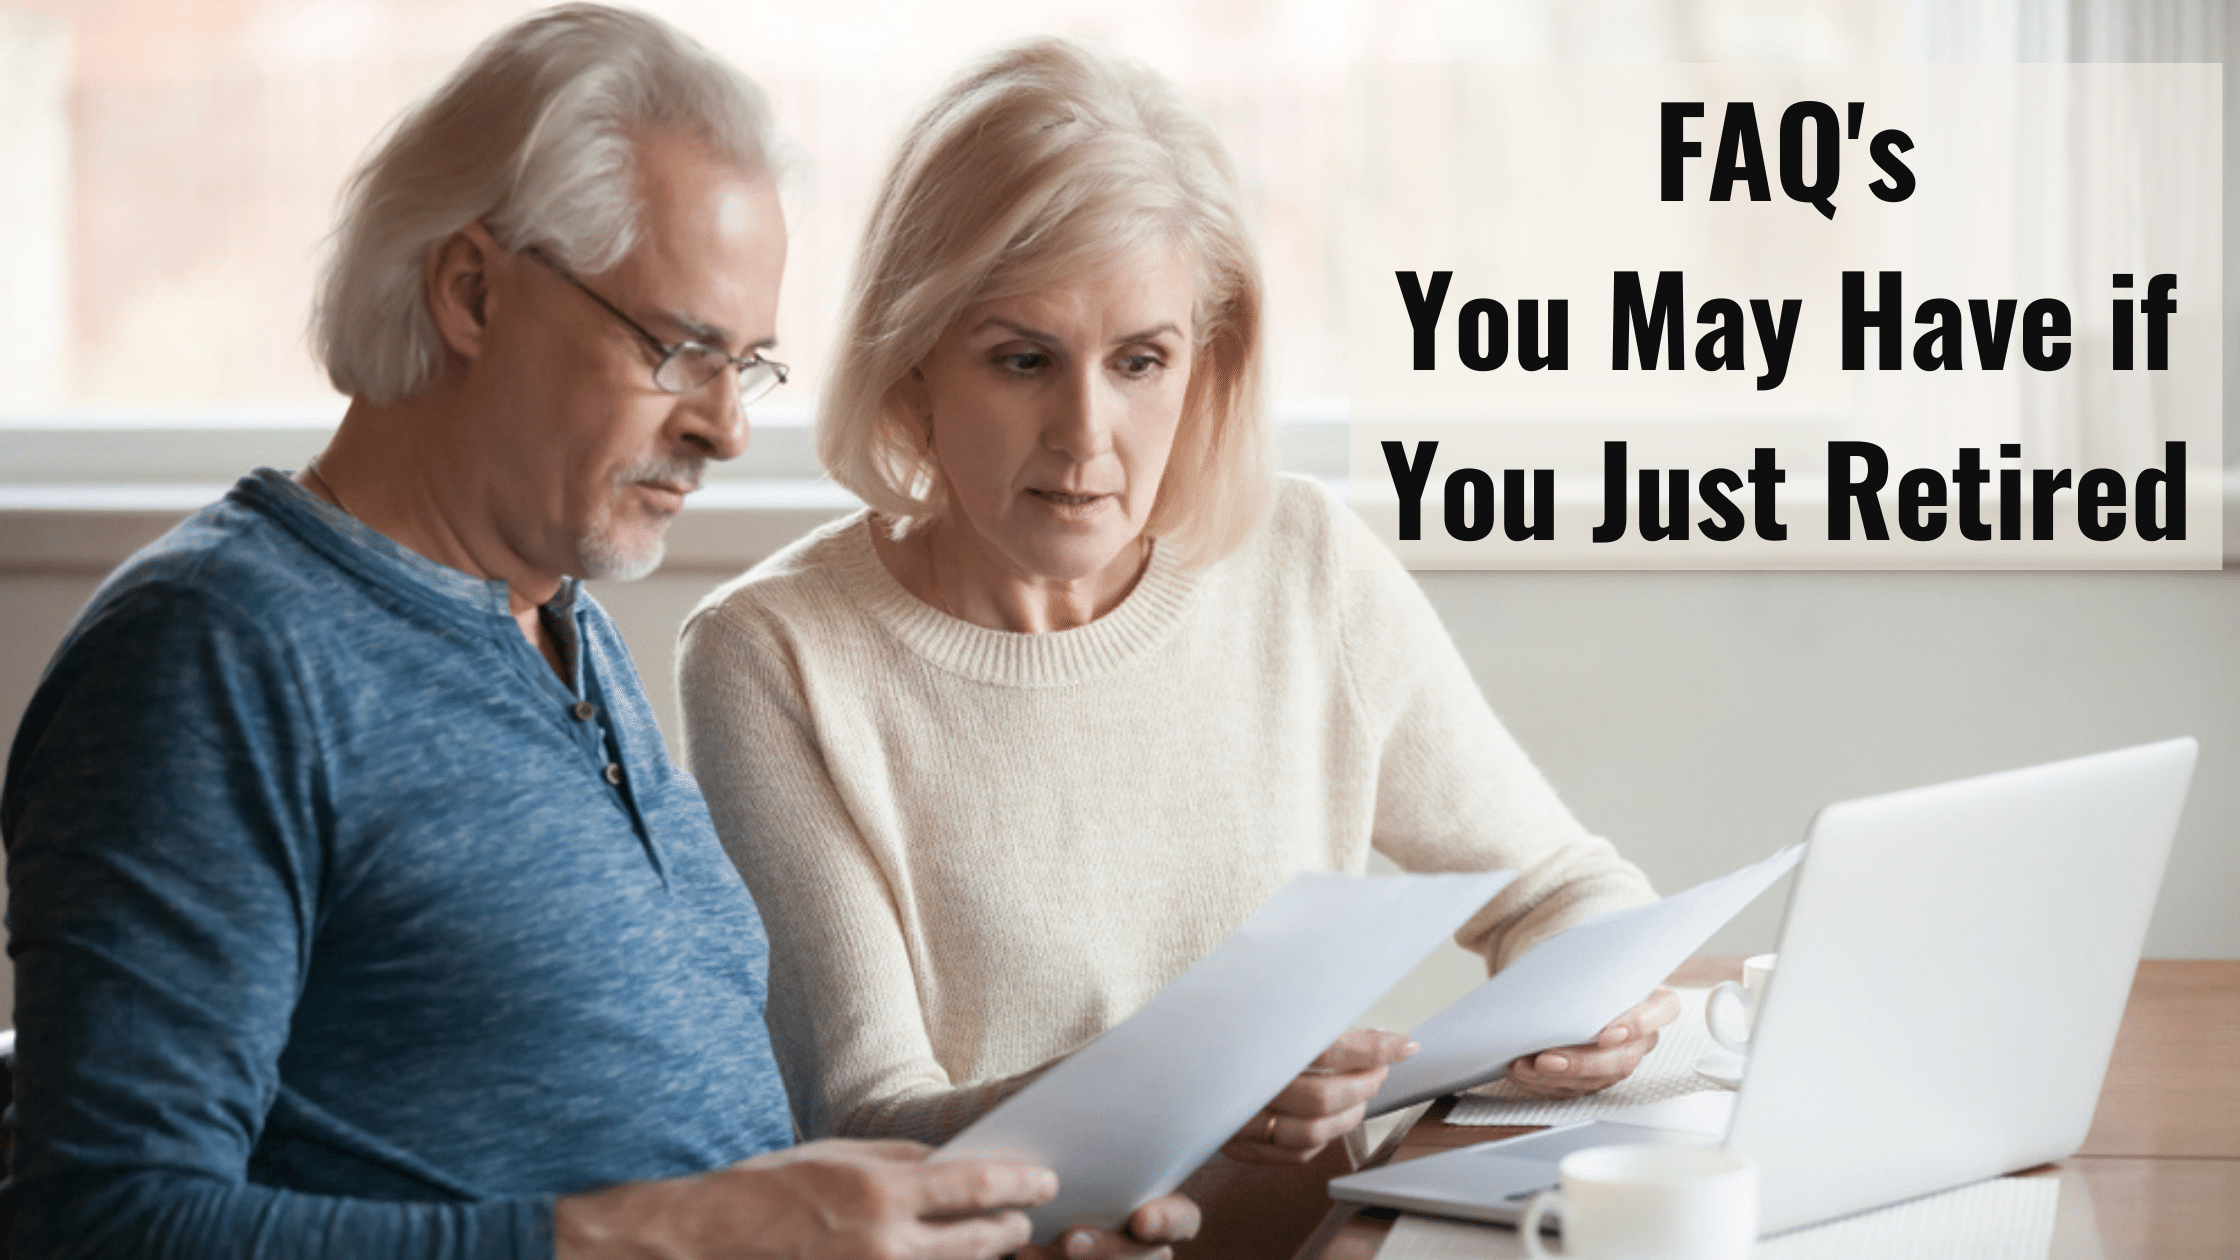 Frequently Asked Questions You May Have If You Just Retired